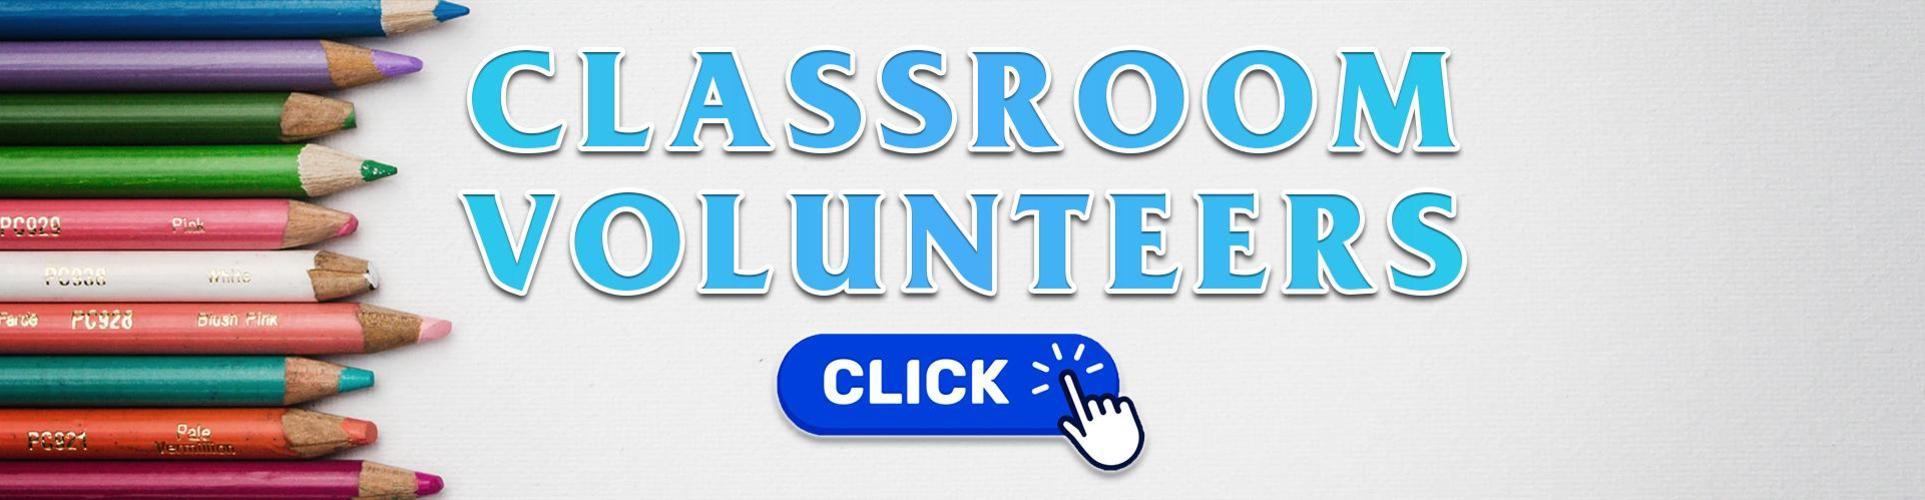 Classroom Volunteers Needed! Click Here to Express an Interest